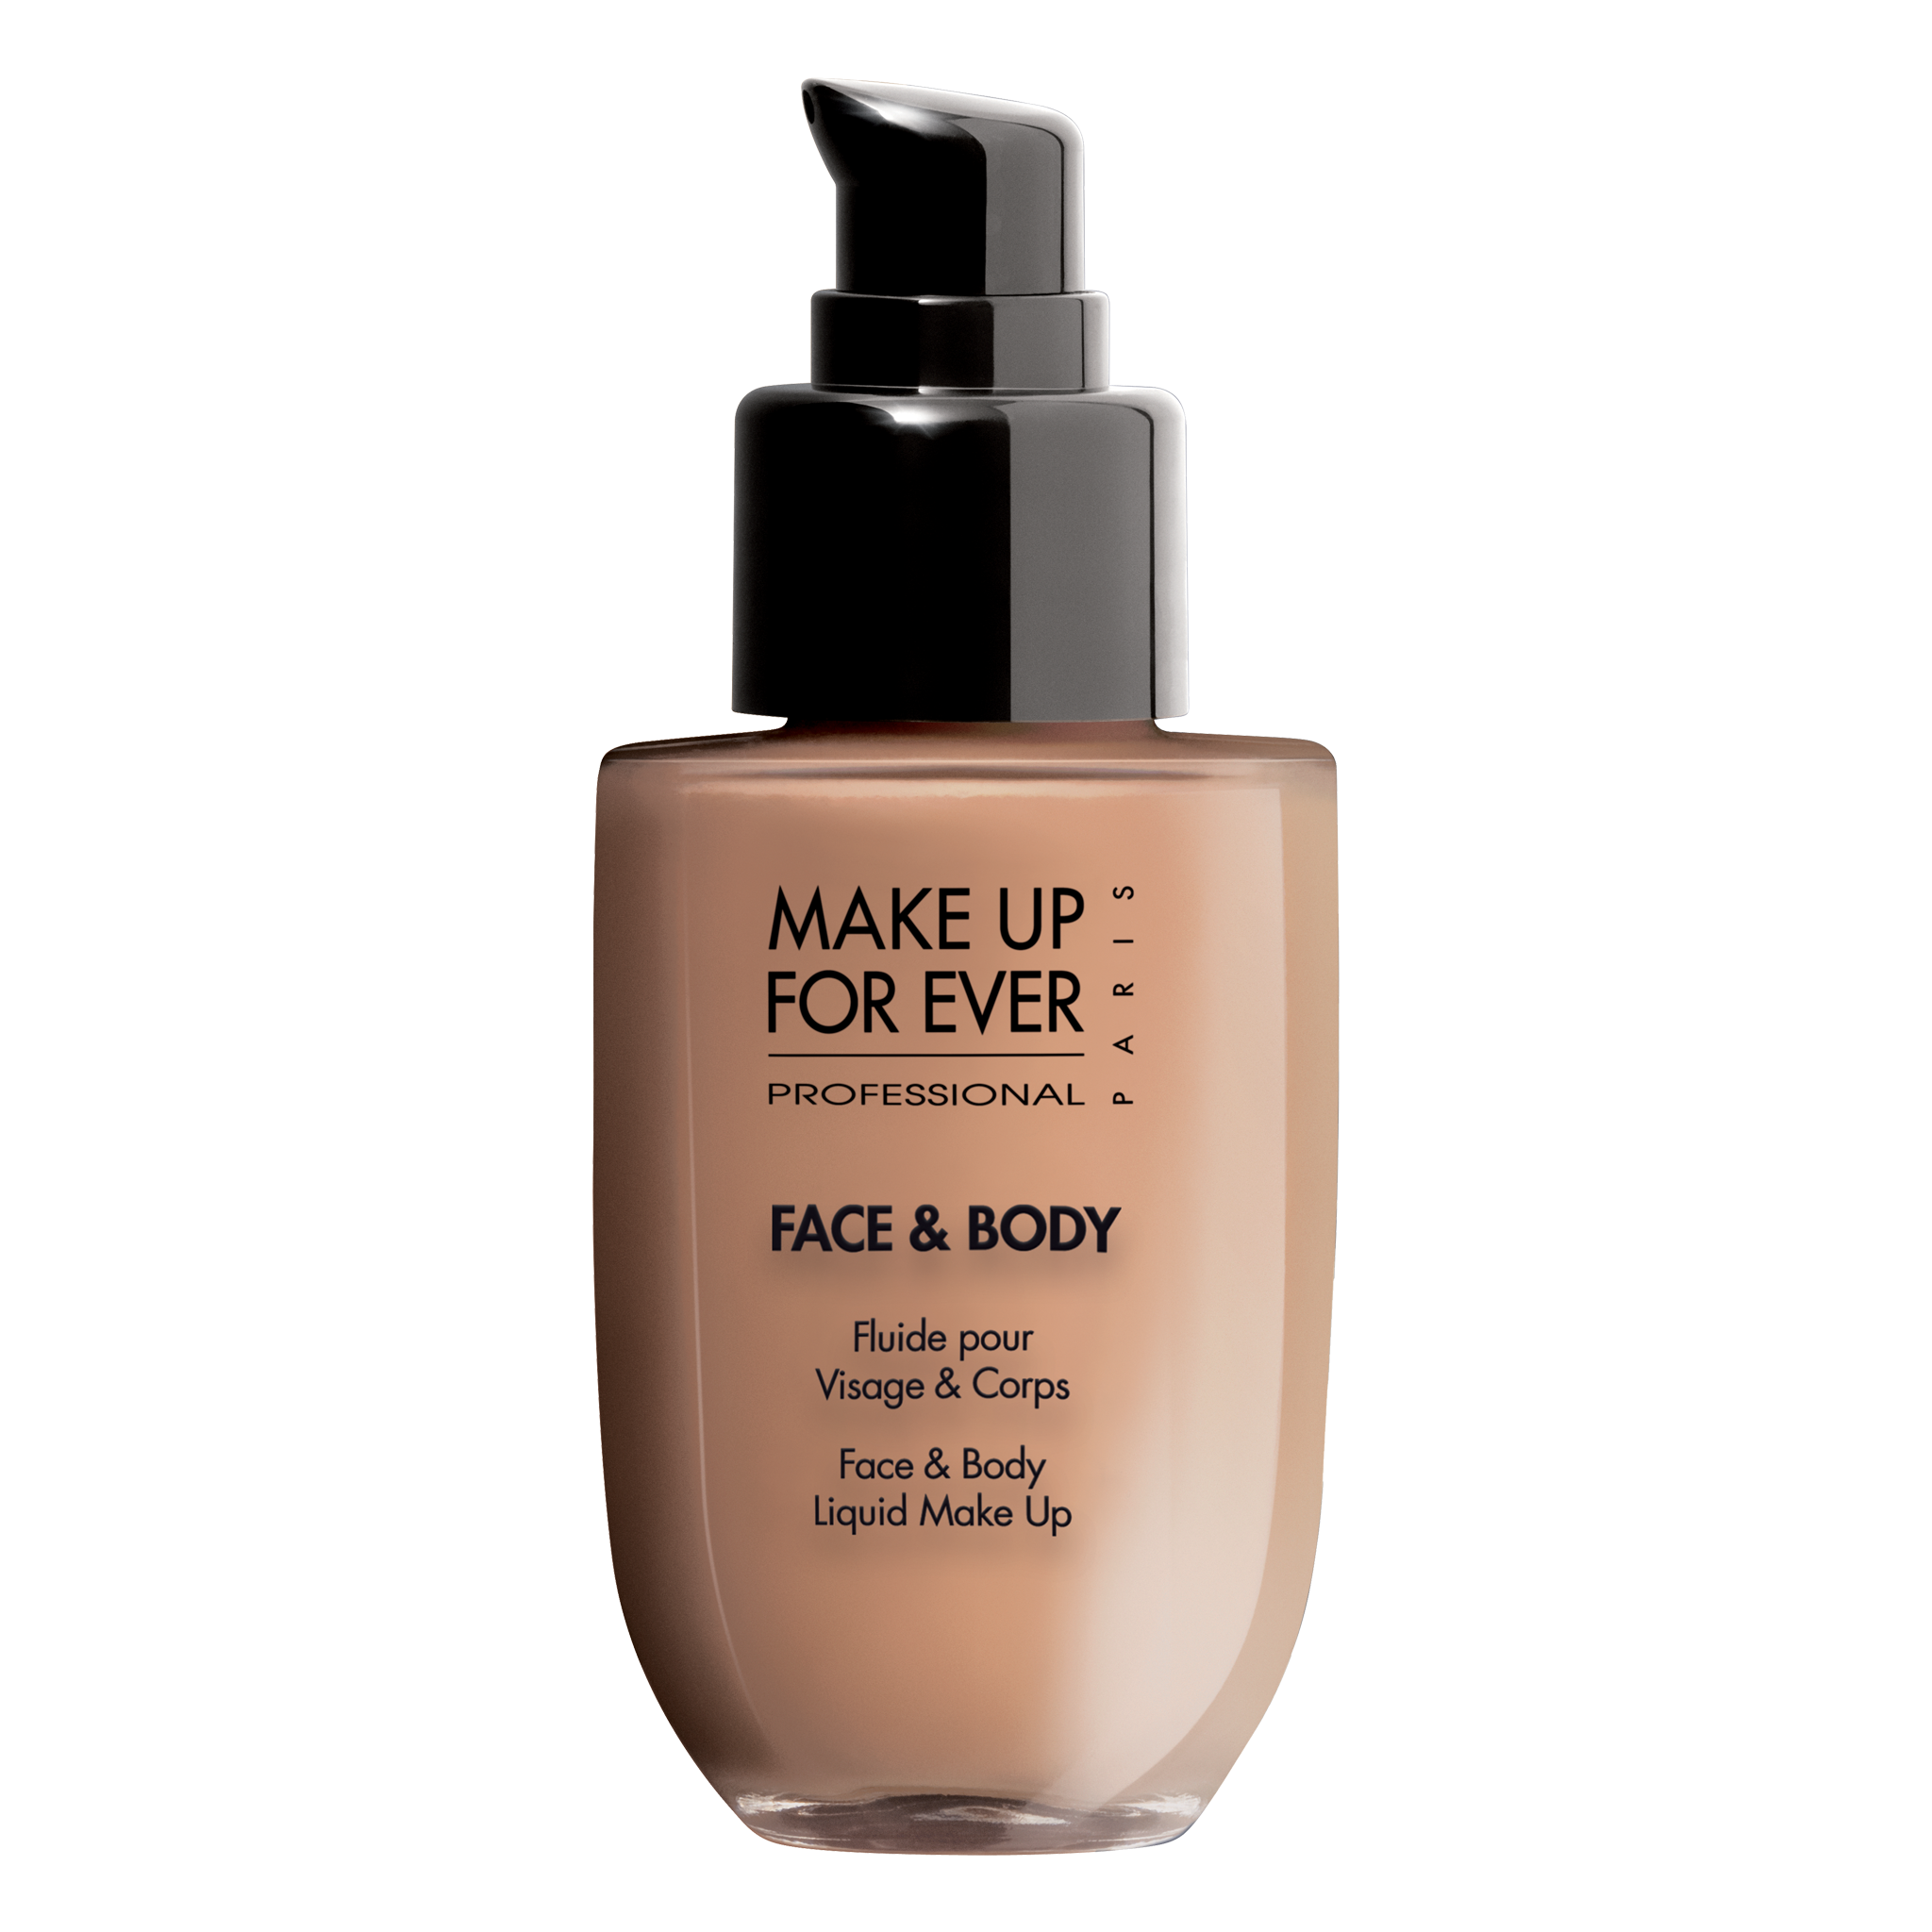 Face & Body Foundation MAKE UP FOR EVER Products I